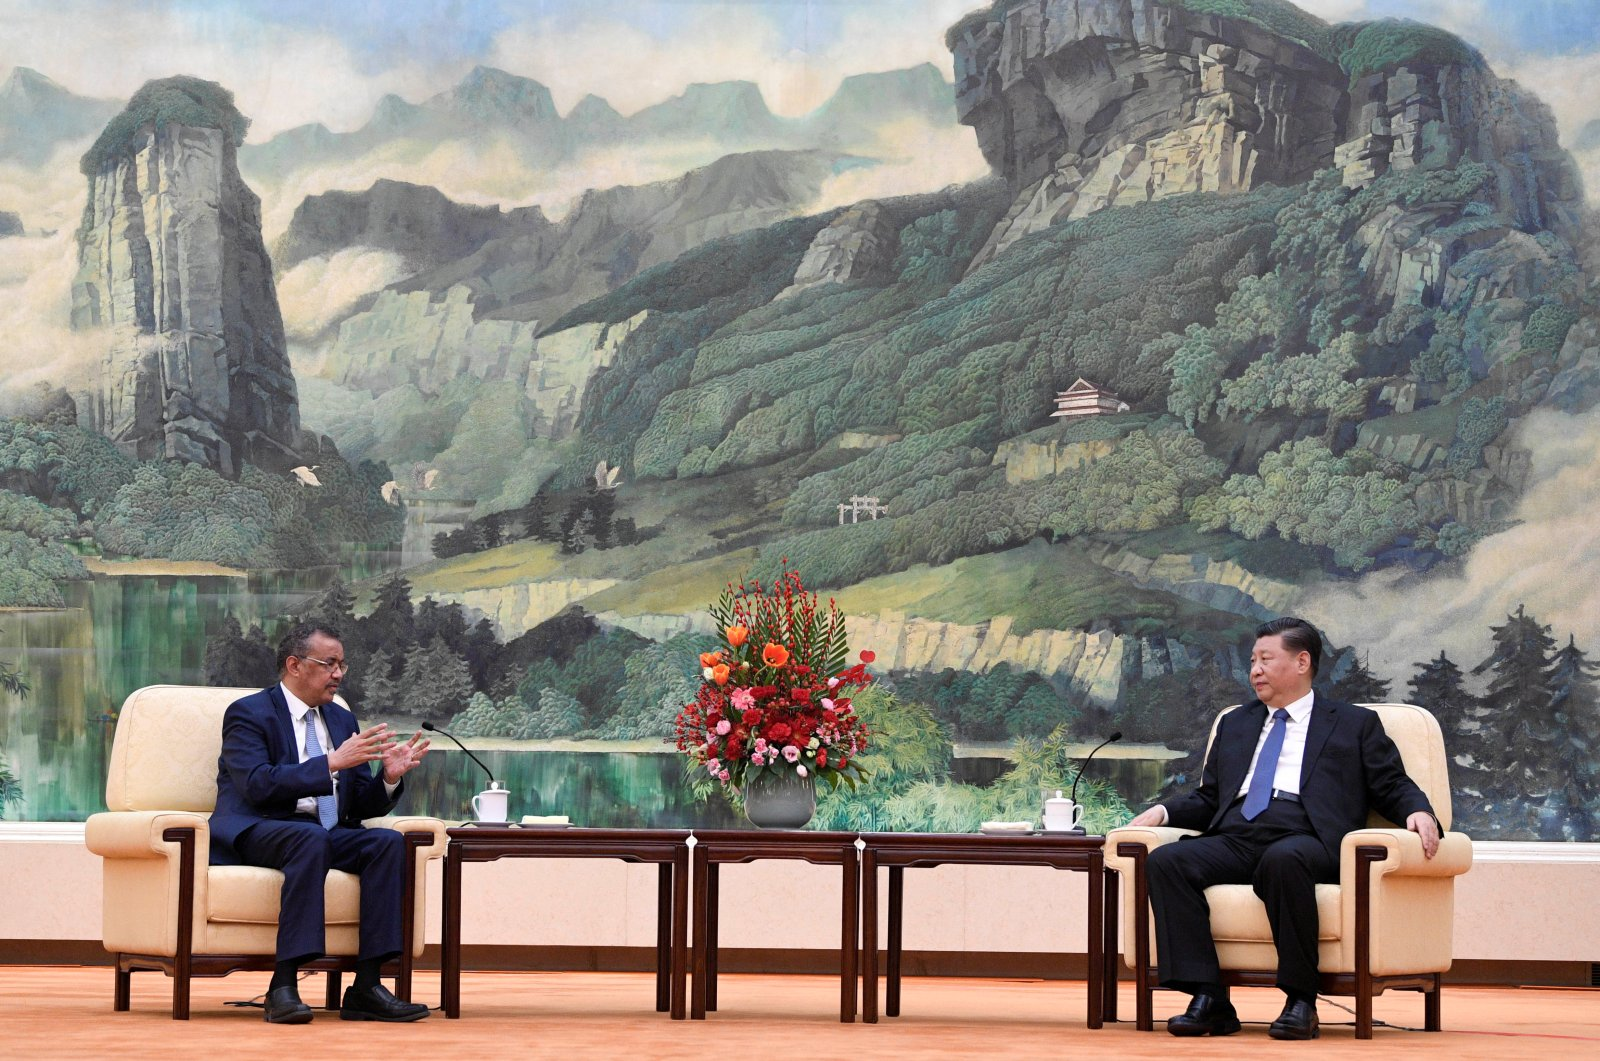 Tedros Adhanom (L), director-general of the World Health Organization, meets with Chinese President Xi Jinping before a meeting at the Great Hall of the People in Beijing, China, Jan. 28, 2020. (Reuters Photo)